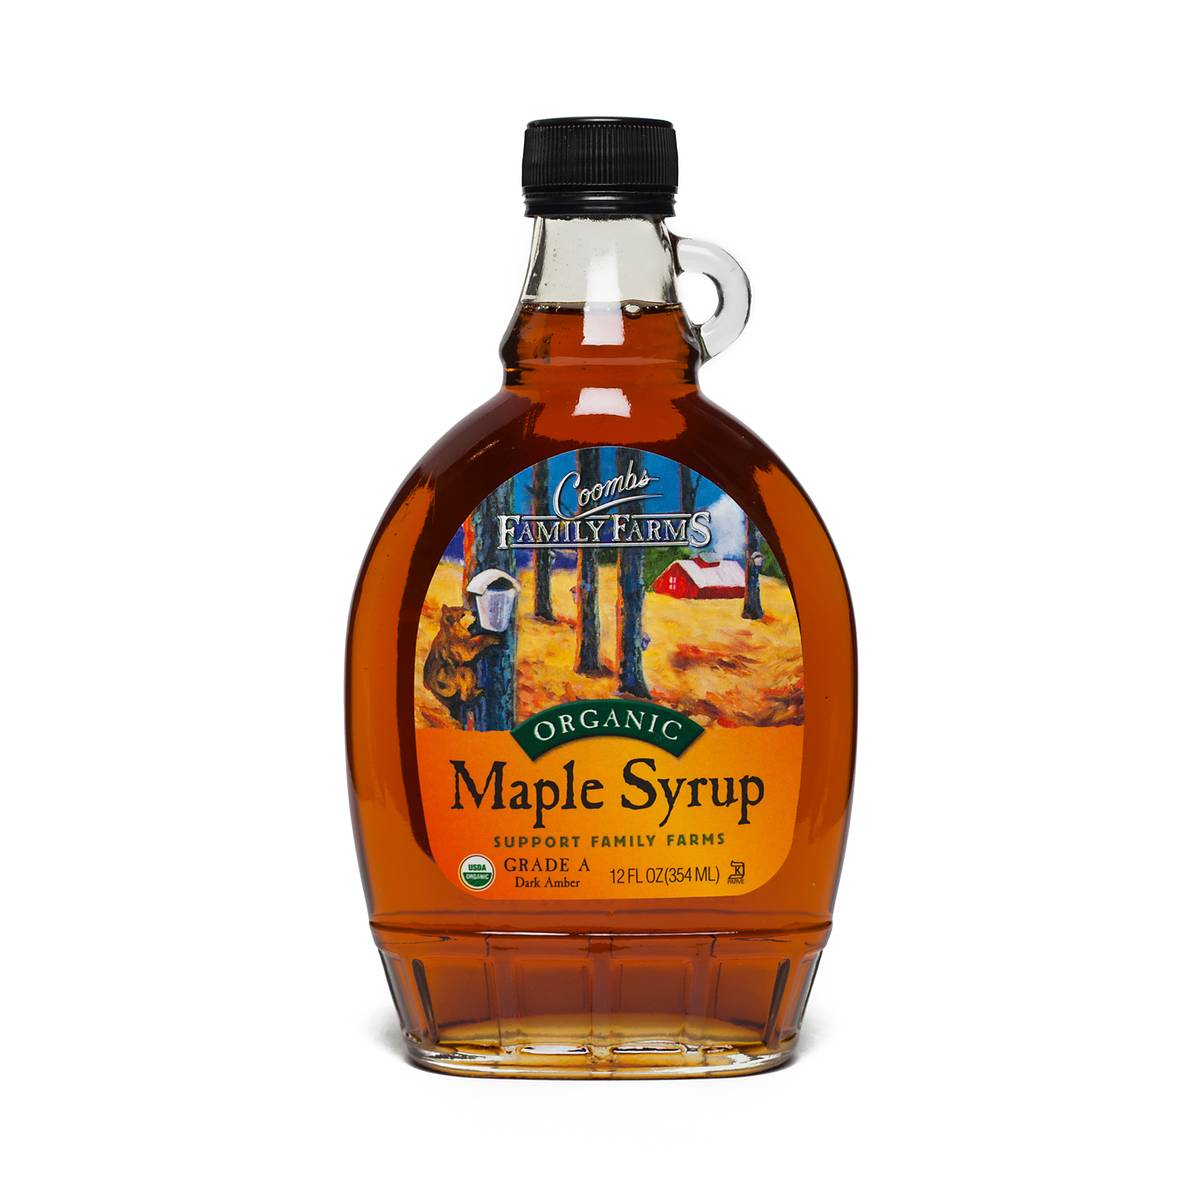 Coombs organic maple syrup